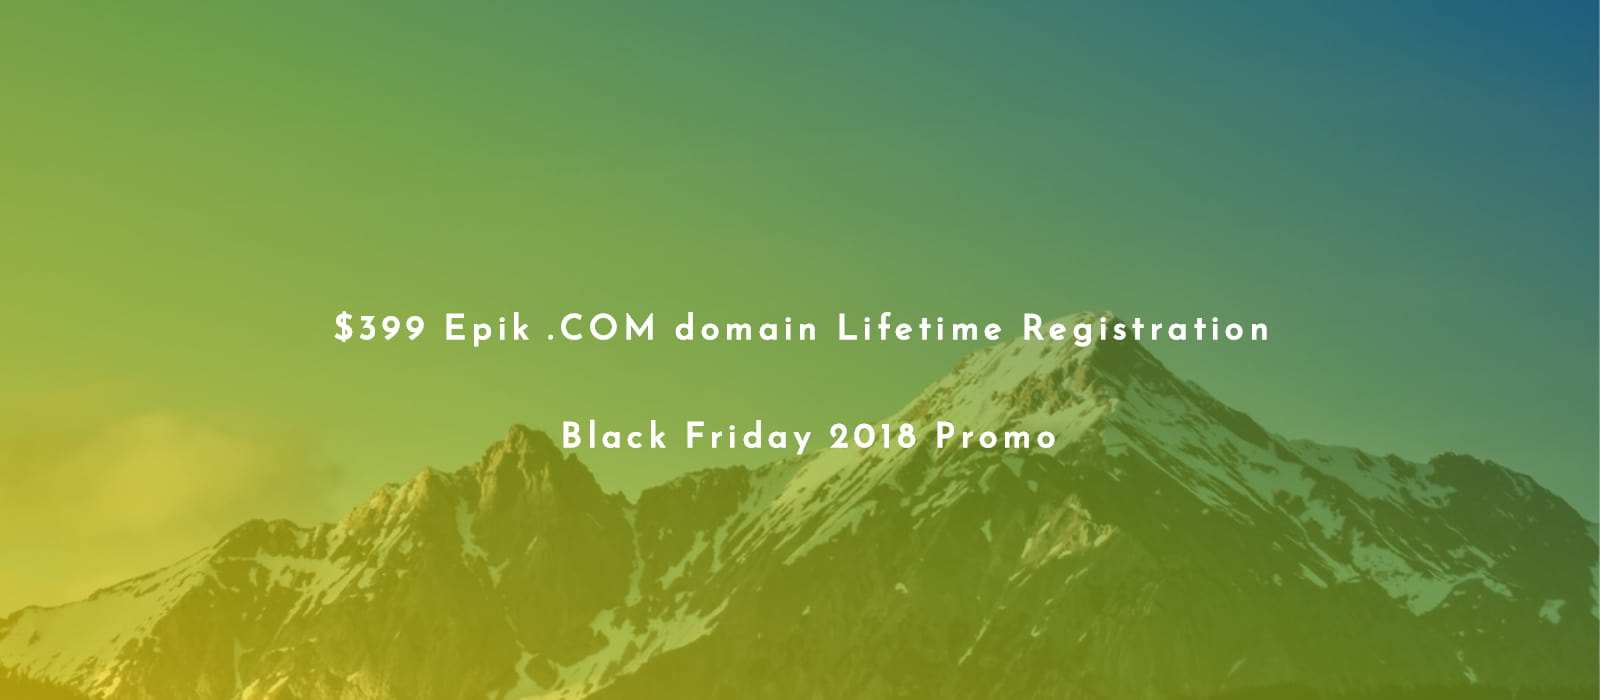 epik-com-domain-lifetime-subscription